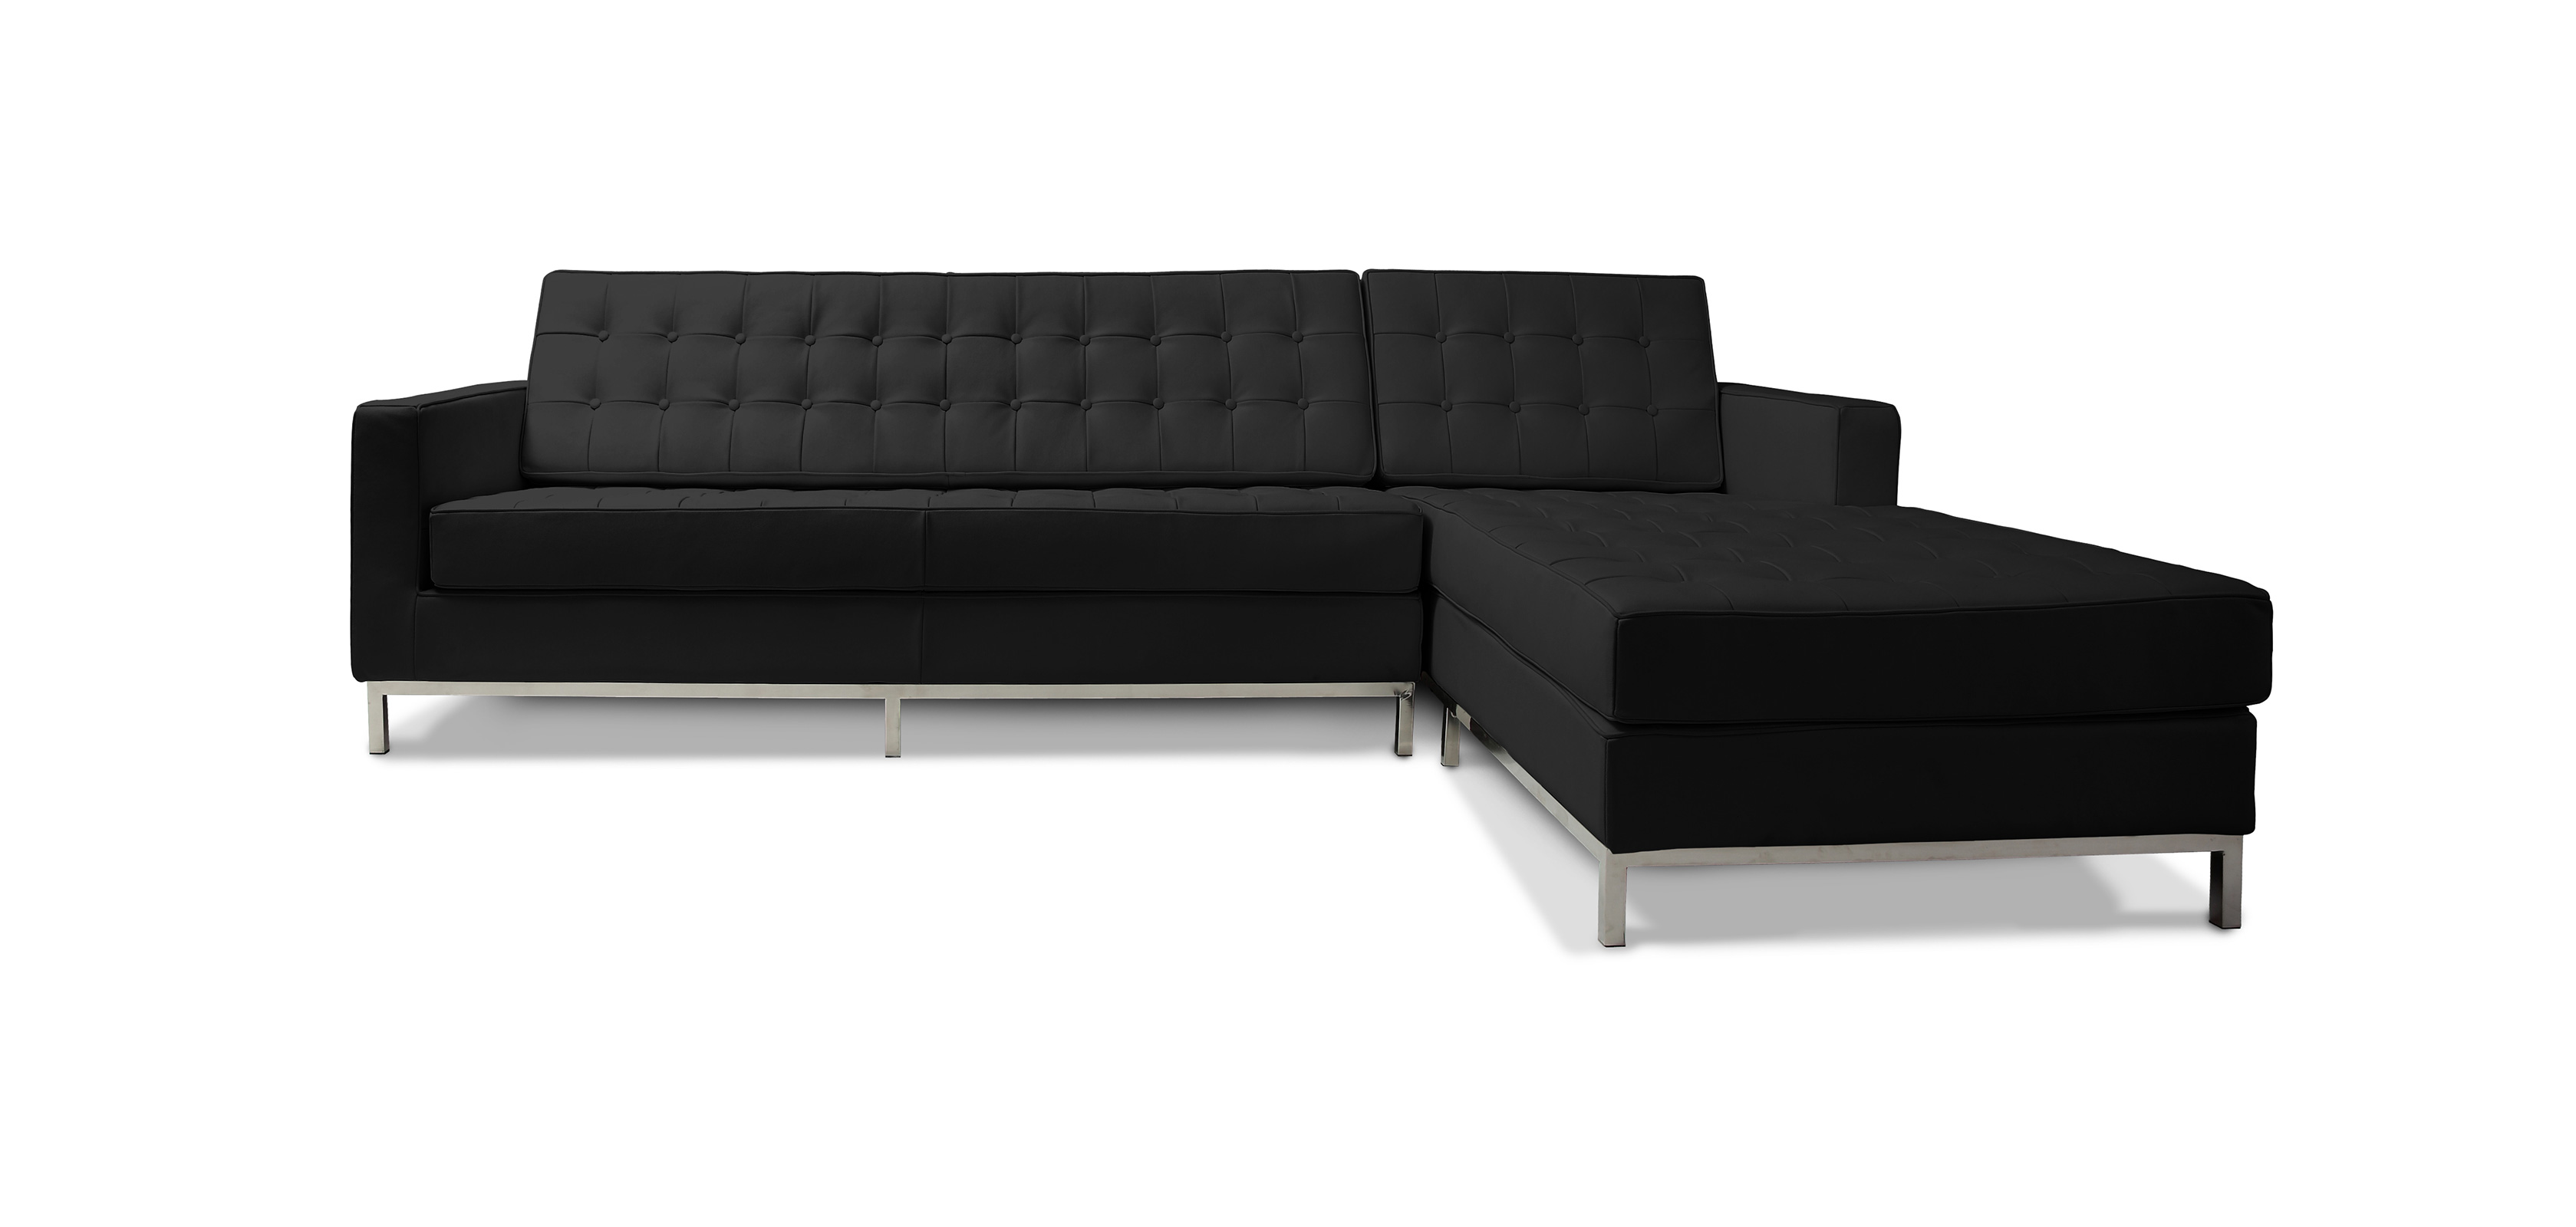 right angled sectional sofa lounges sofas design corner florence knoll style angle